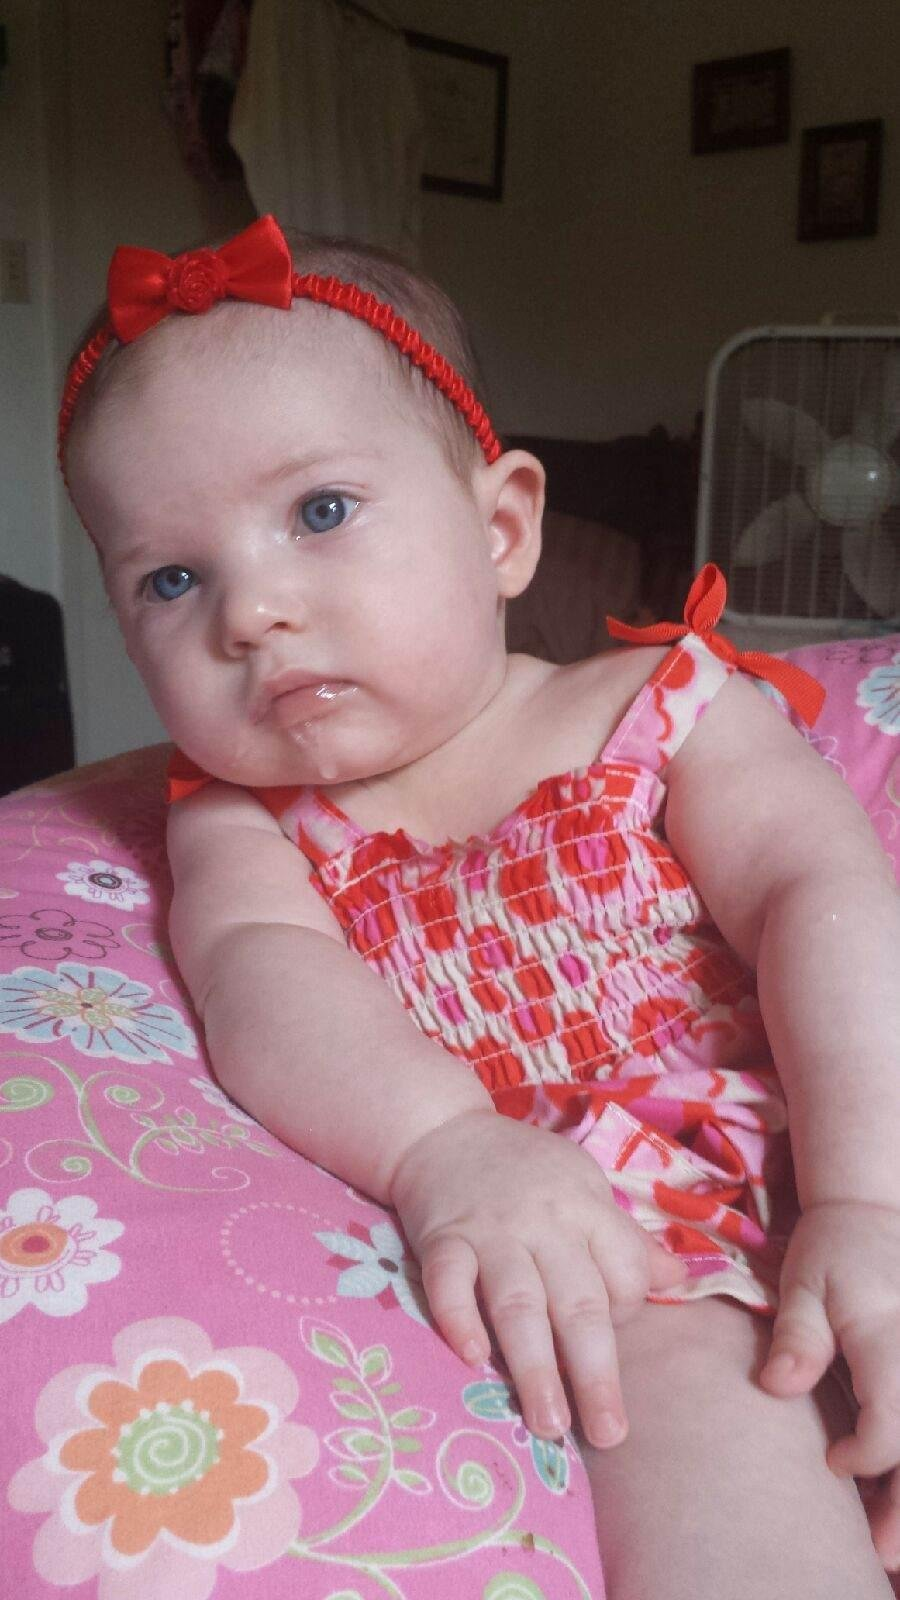 Olivia Smith, 5 months old